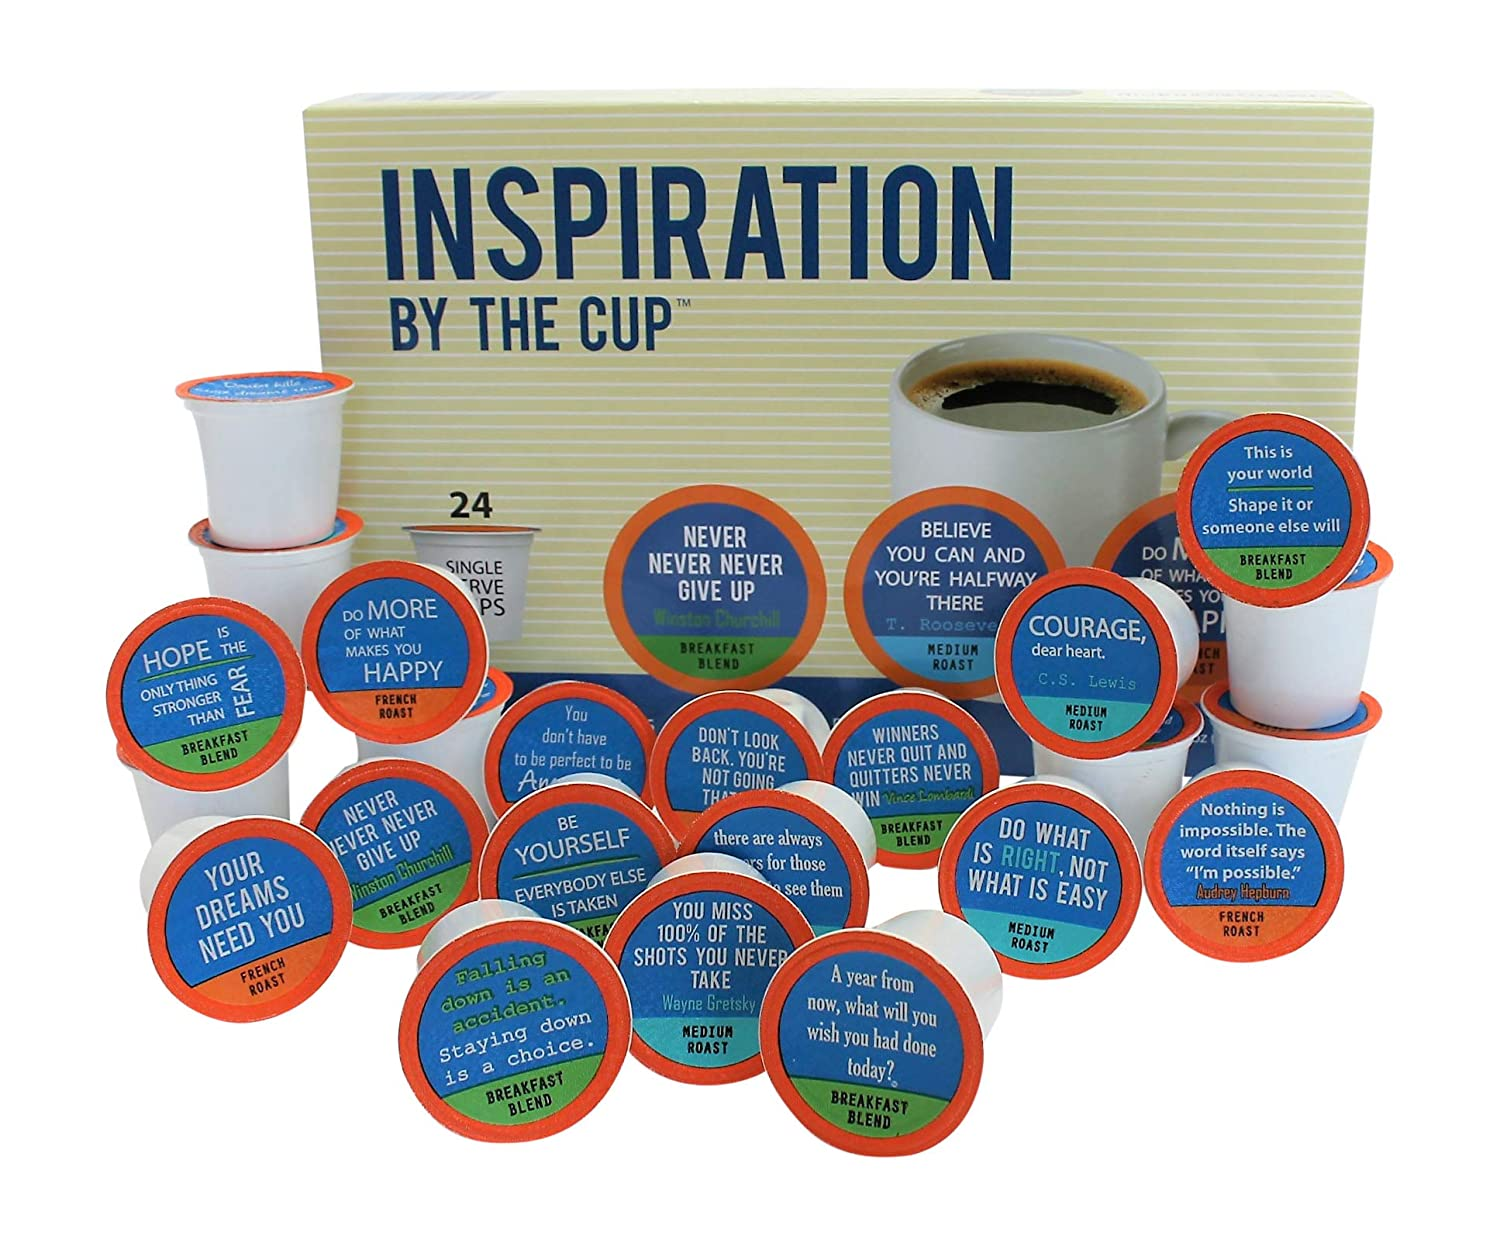 75c7f7f7 Inspiration by the Cup - 24 Inspiring Quotes On 24 Single Serve K-Cups:  Amazon.com: Grocery & Gourmet Food